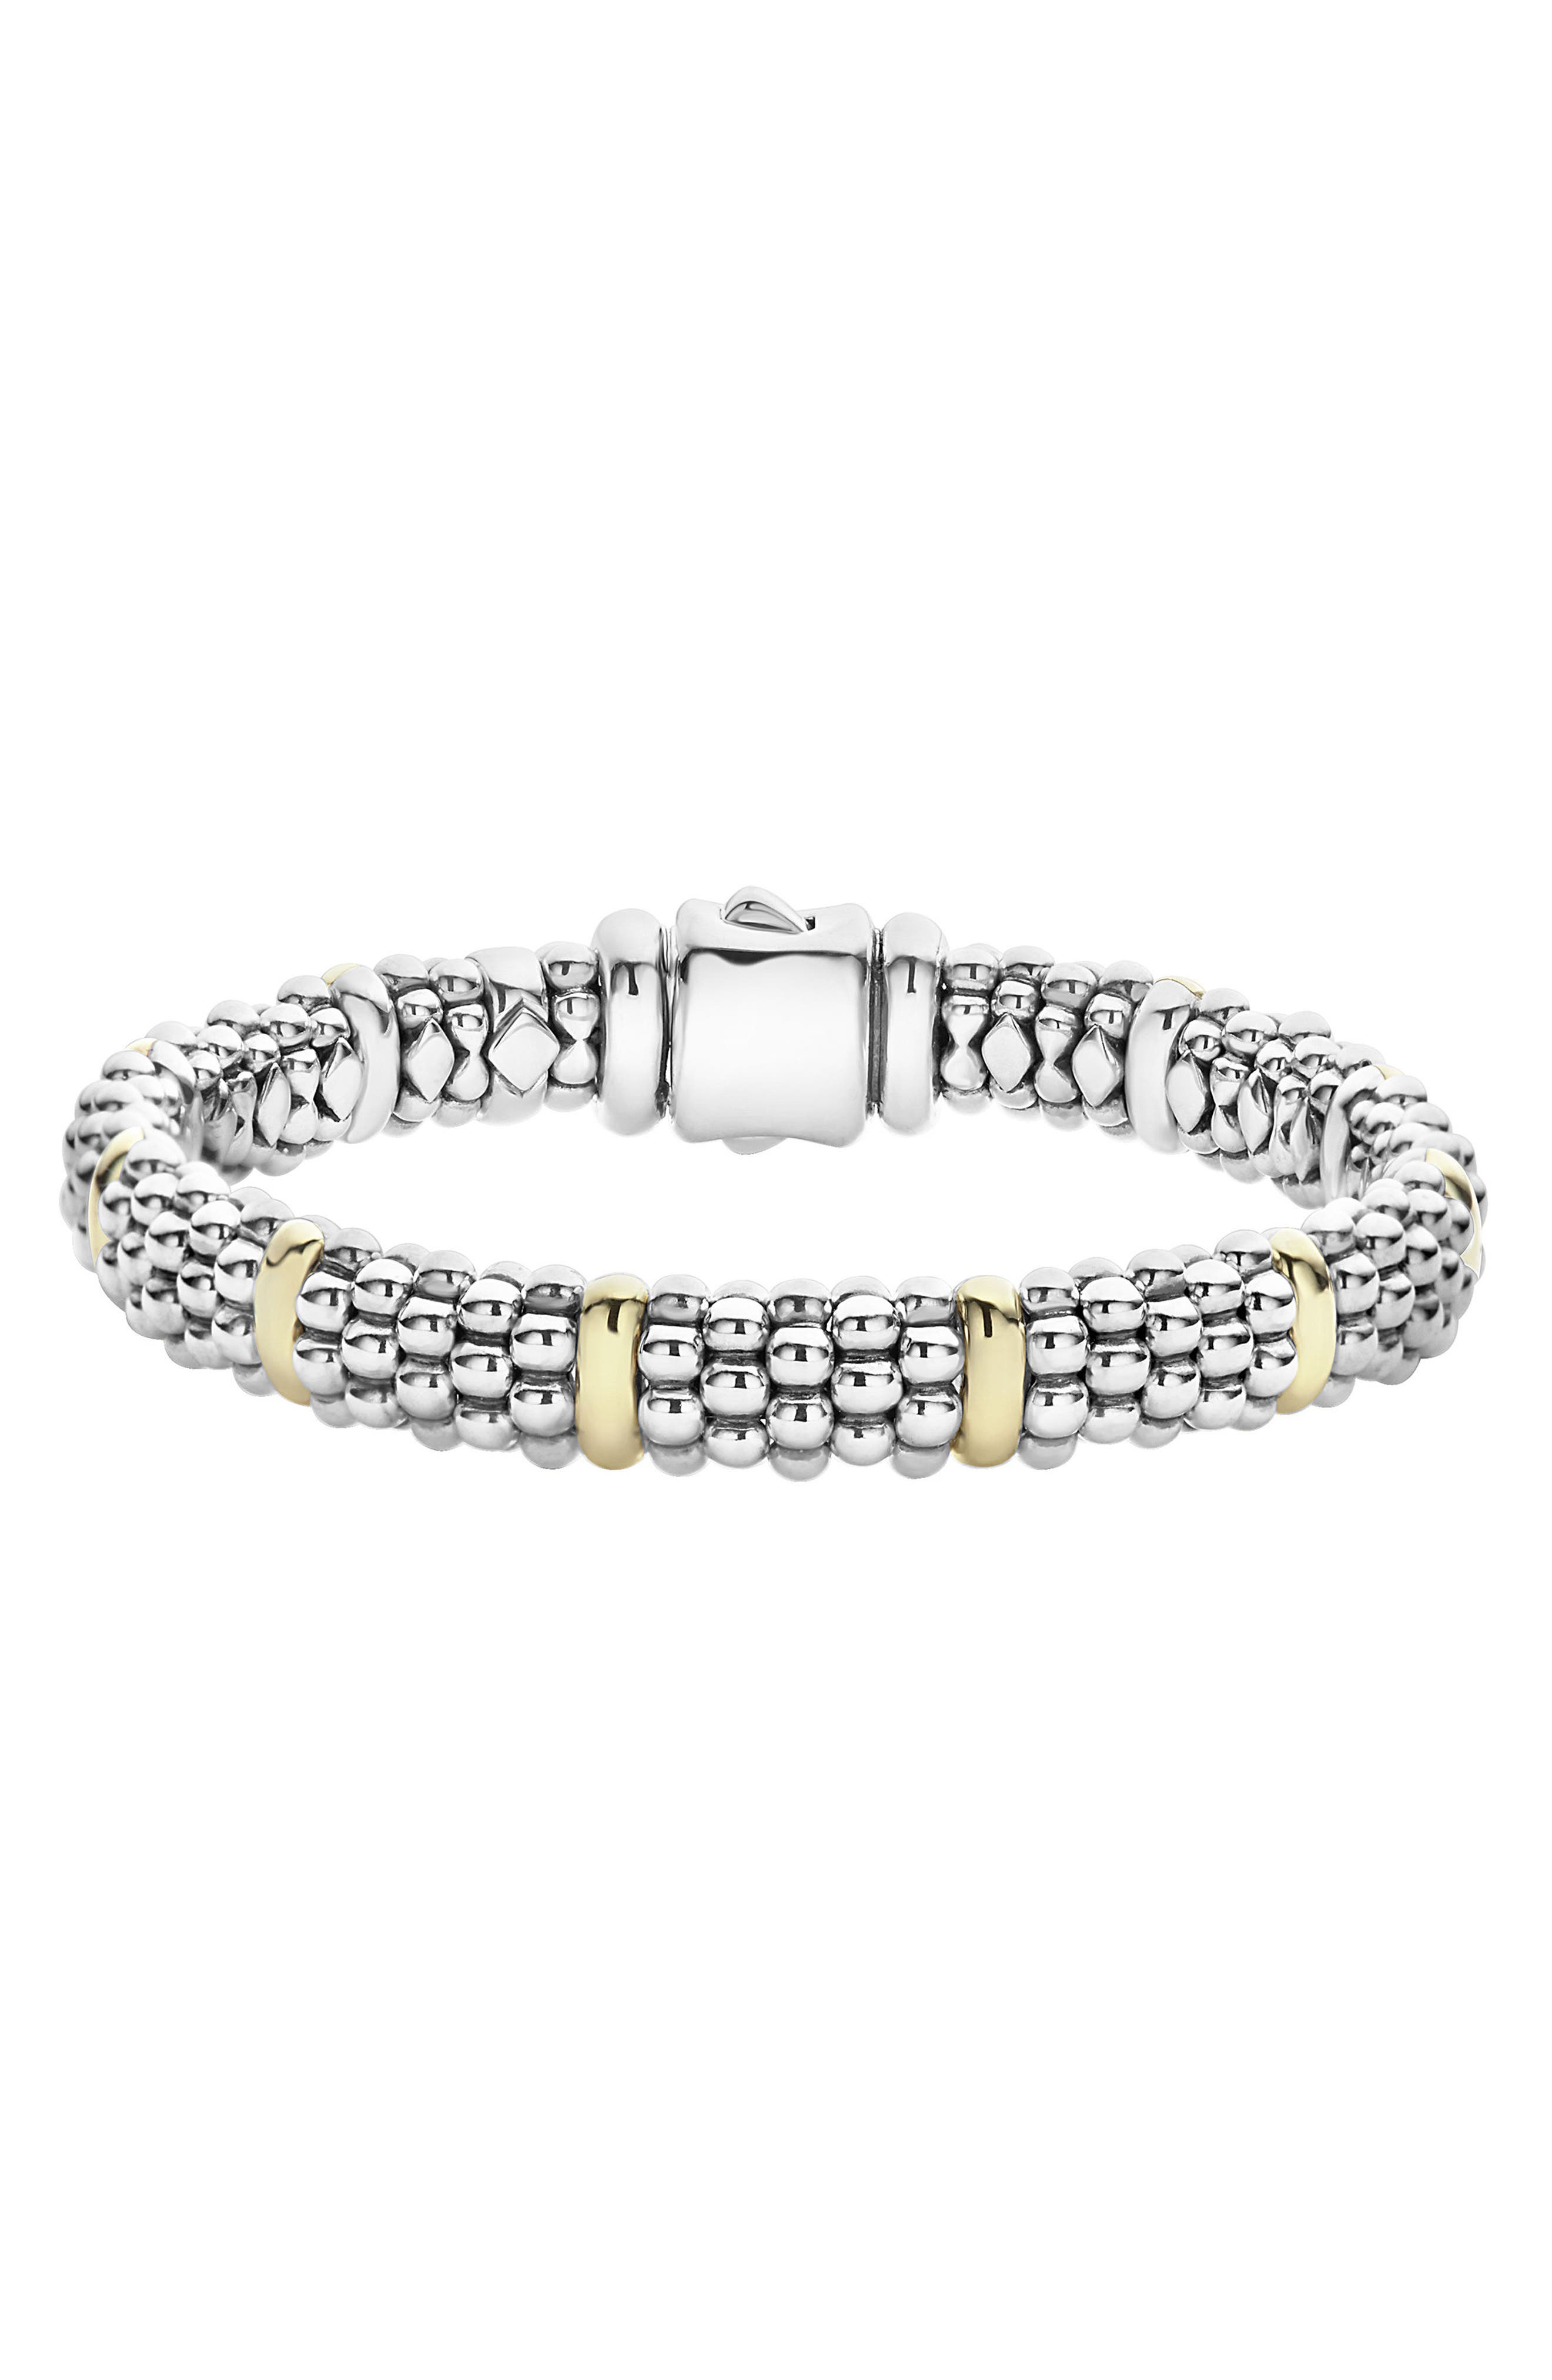 Oval Caviar Rope Bracelet,                             Main thumbnail 1, color,                             SILVER/ GOLD